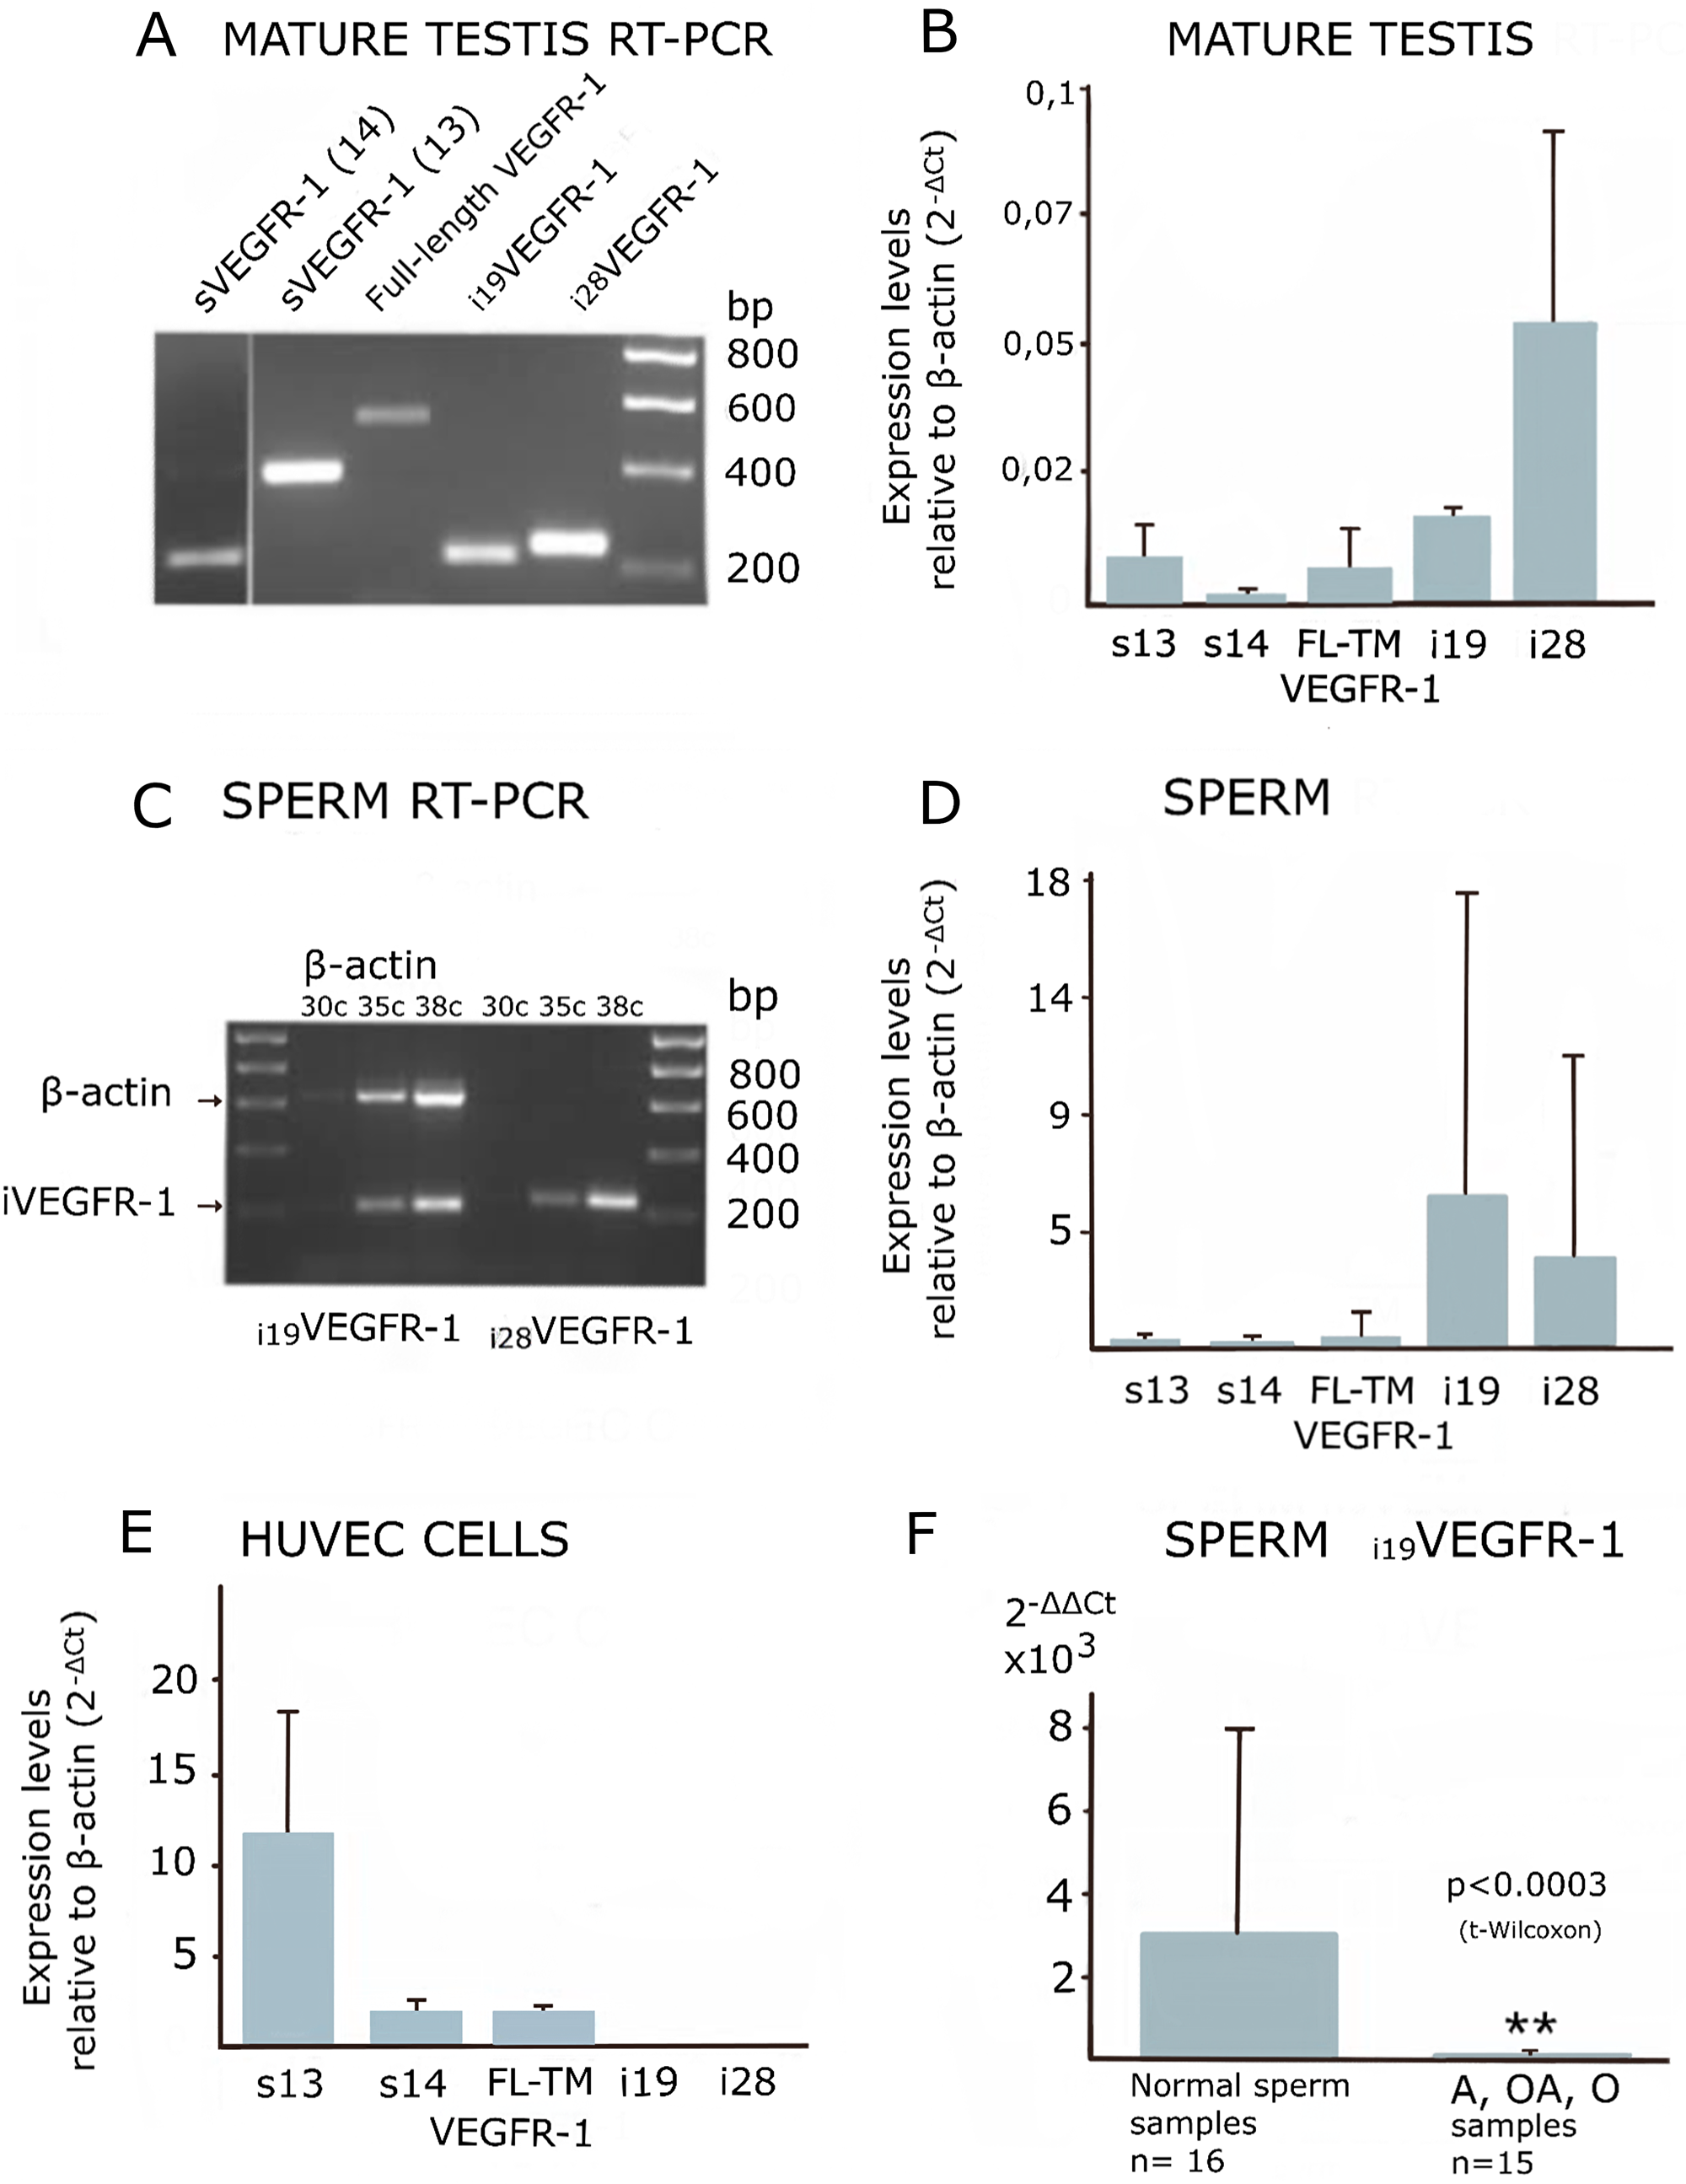 Expression of VEGFR-1 variants analyzed by manual, semi-quantitative and real-time PCR.